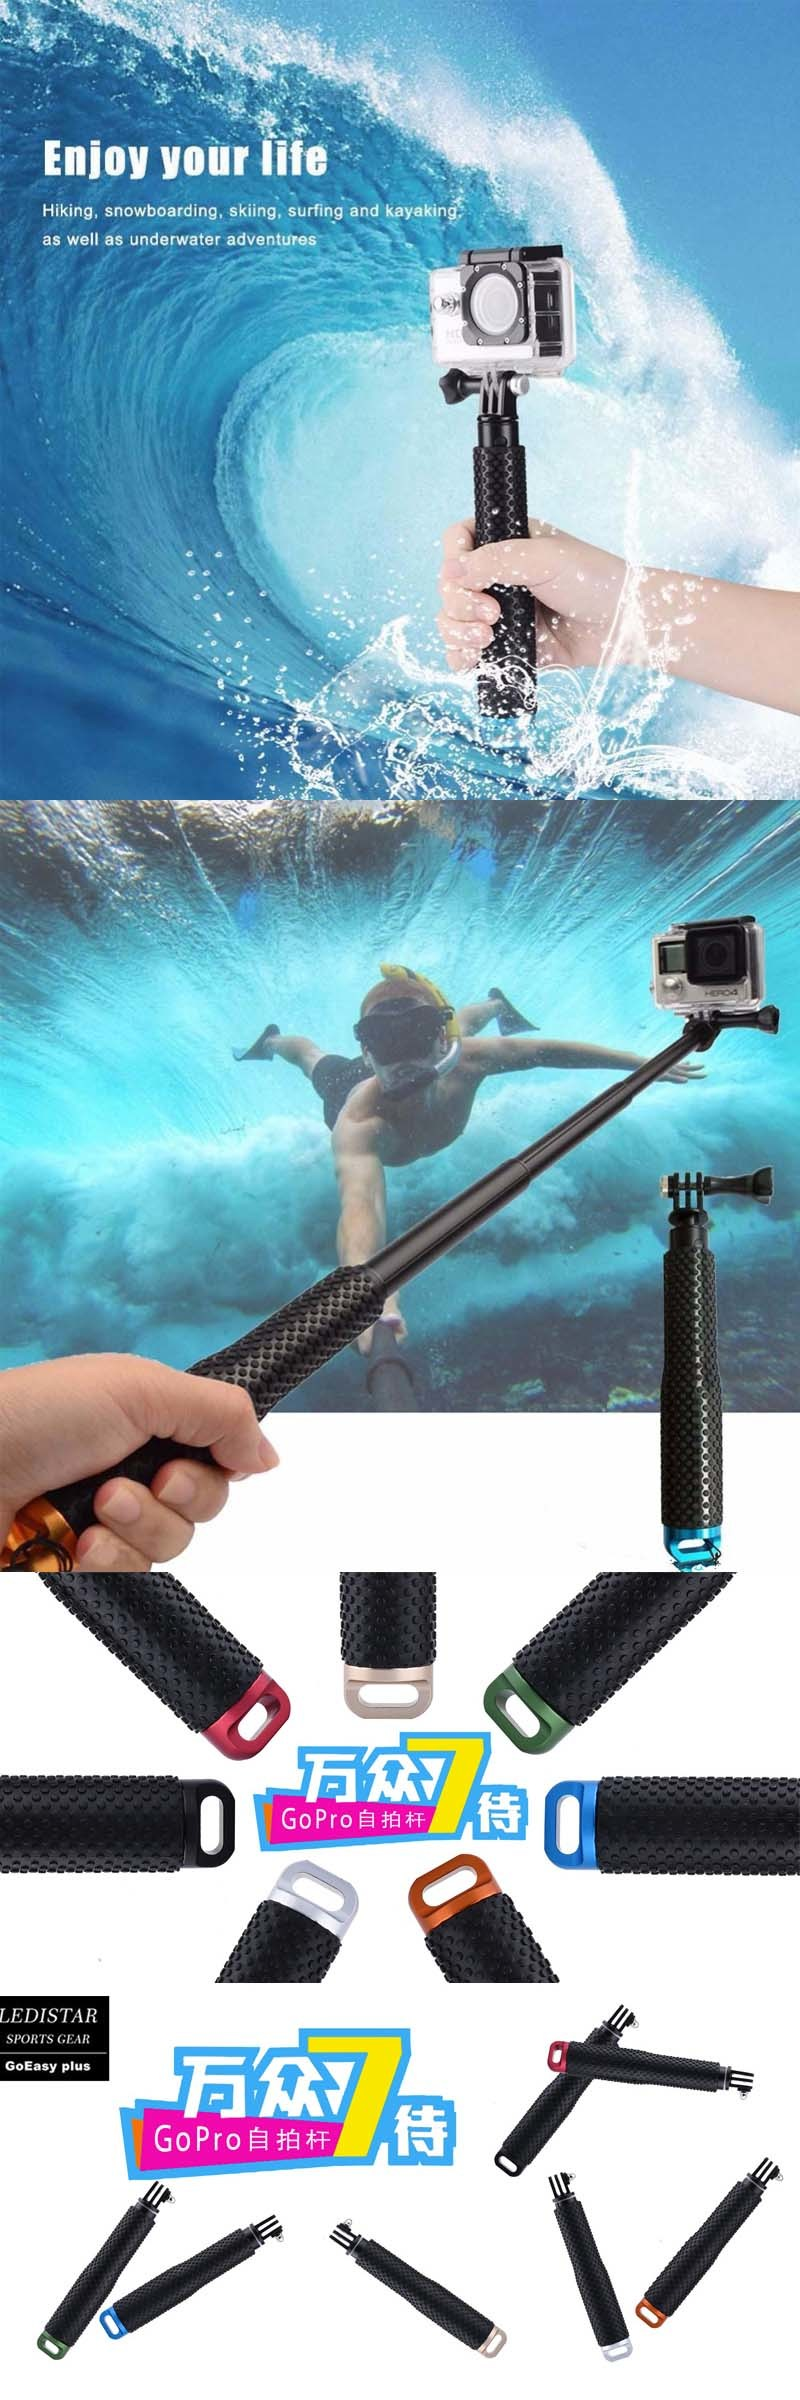 Waterproof Gopro Monopod Colorful Aluminum Selfie Stick for Gopro